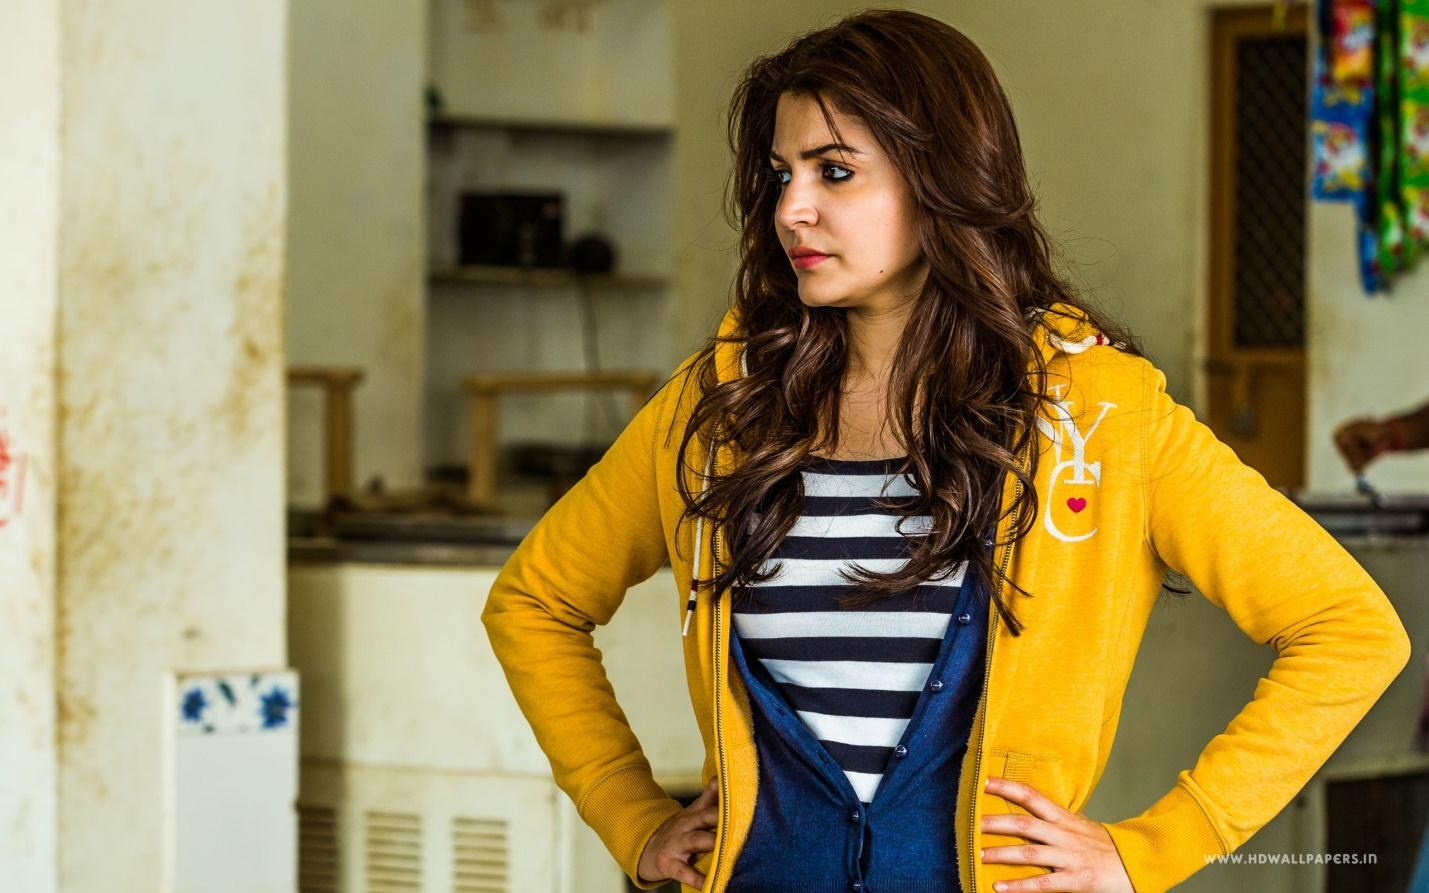 http://www.hdwallpapers.in/walls/anushka_sharma_in_nh10-wide.jpg